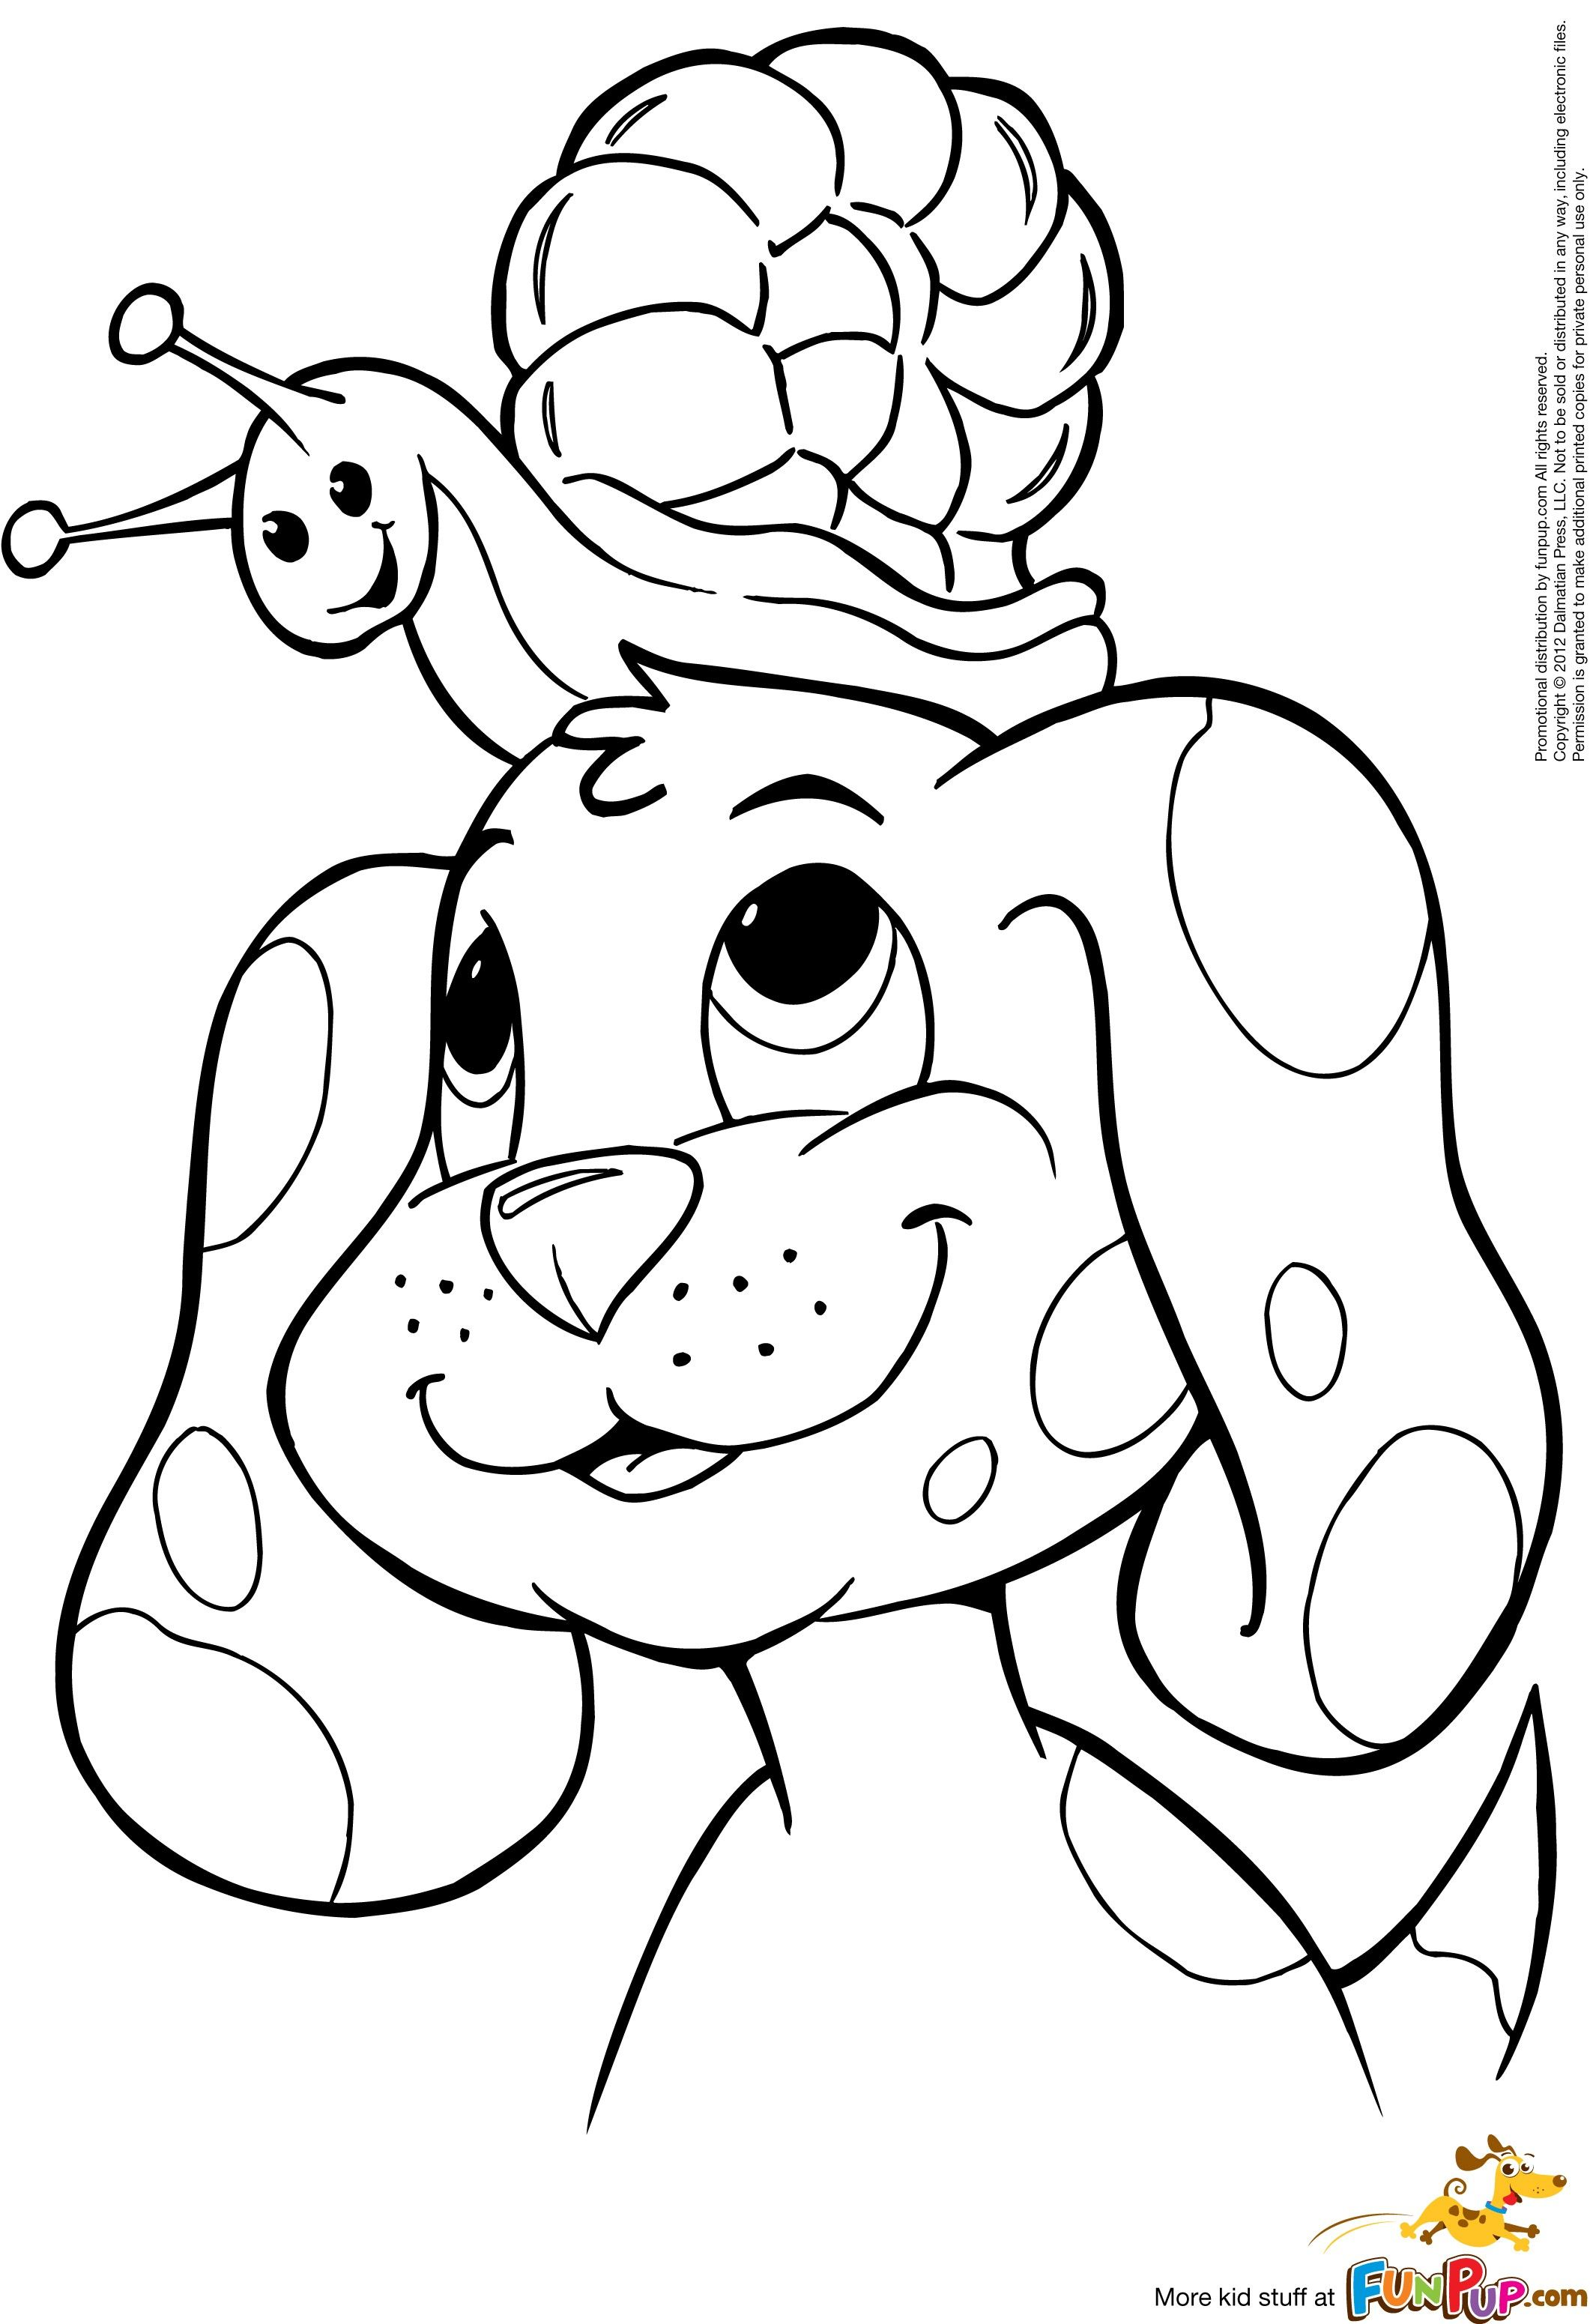 kids puppy printable coloring pages - photo#5